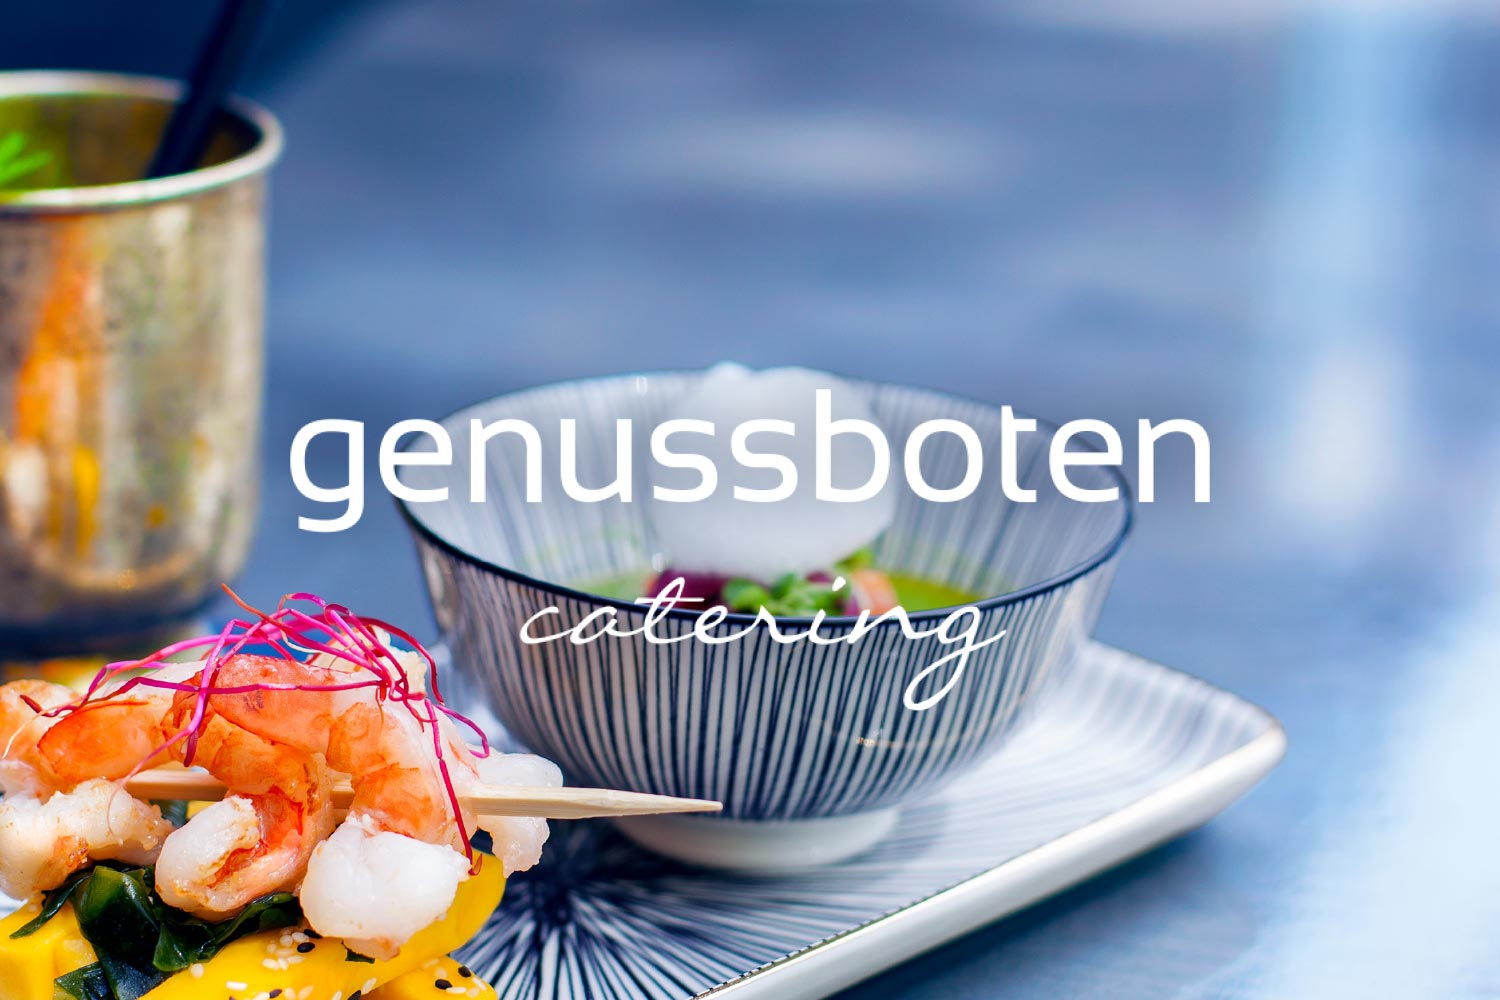 Genussboten Catering Berlin - Cover